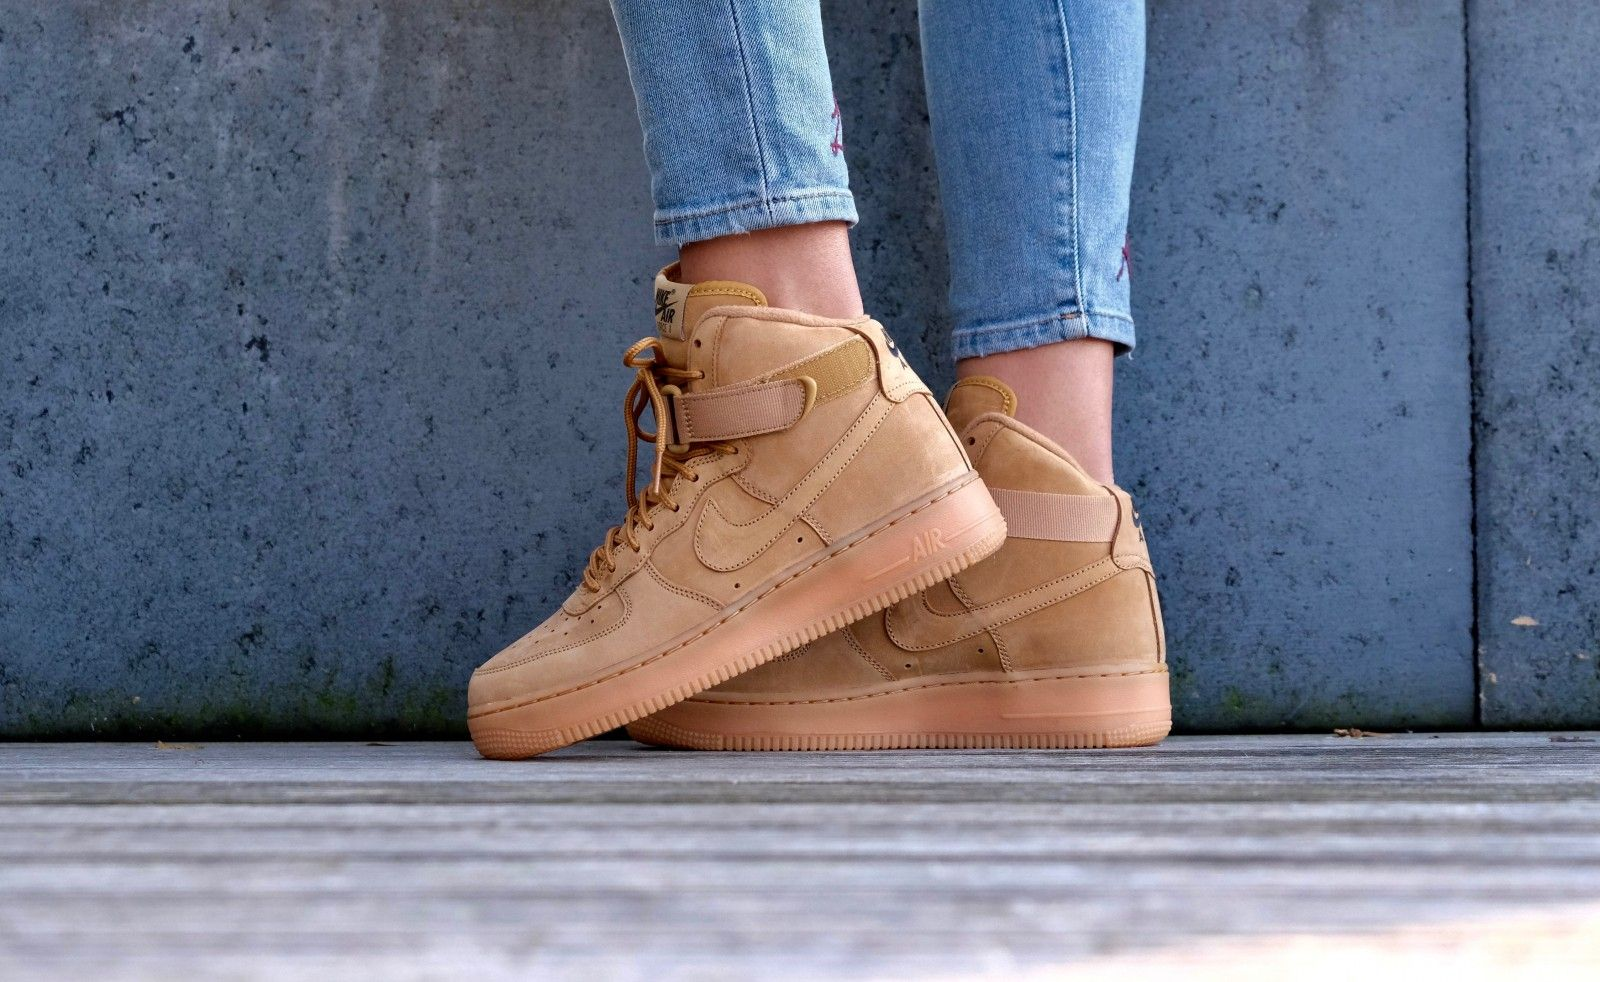 super popular 43bc0 fb7ff Nike Air Force 1 High Lv8 GS Flax x2F Flax - 807617-200